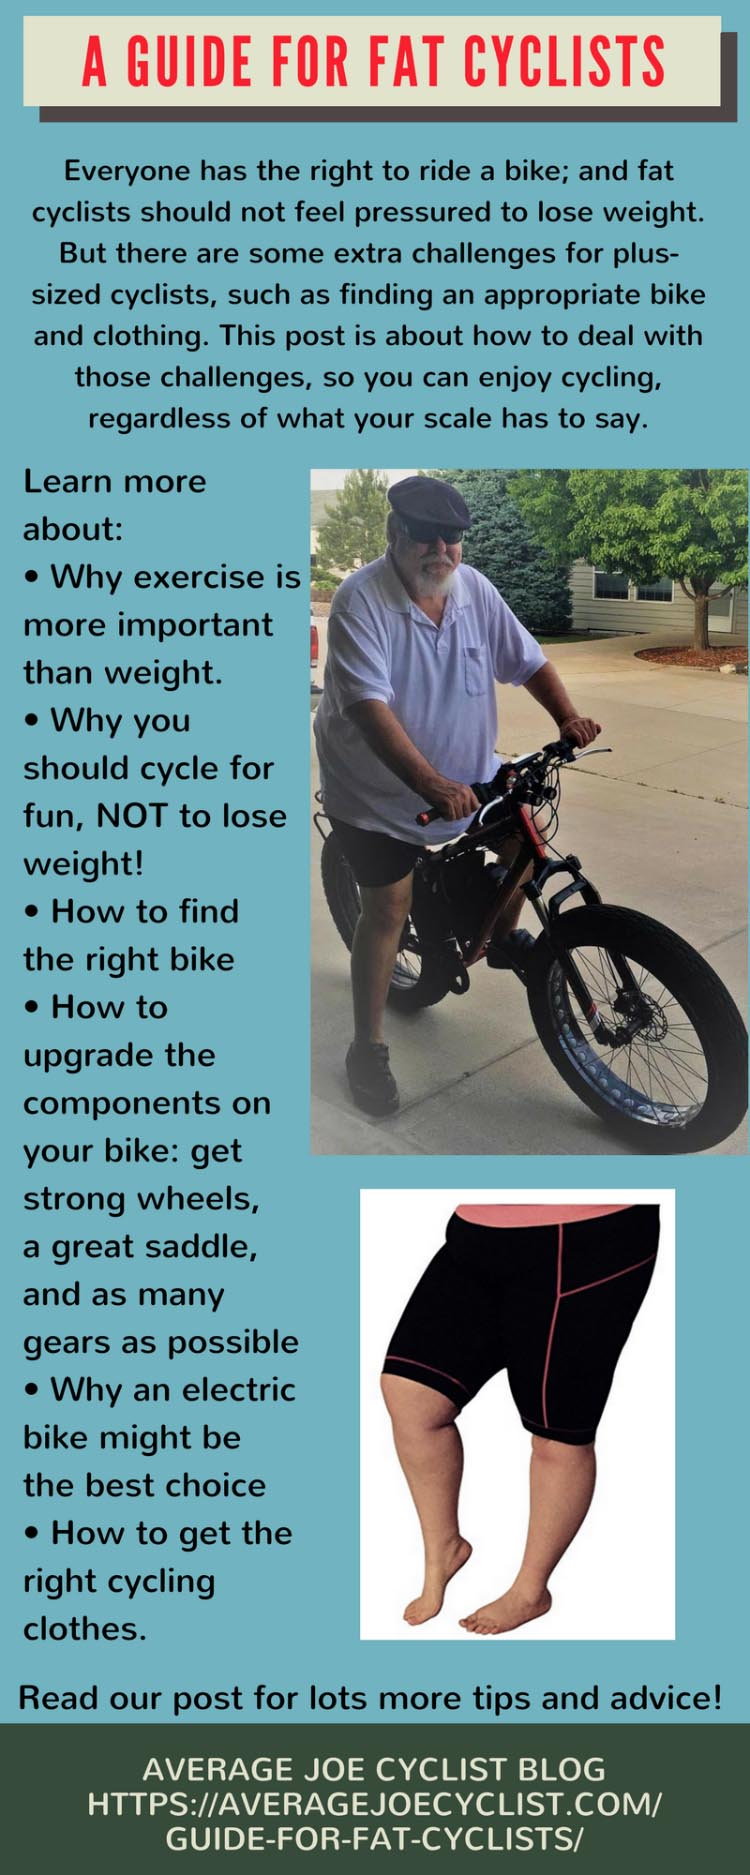 c0e667b43 A Guide for Fat Cyclists